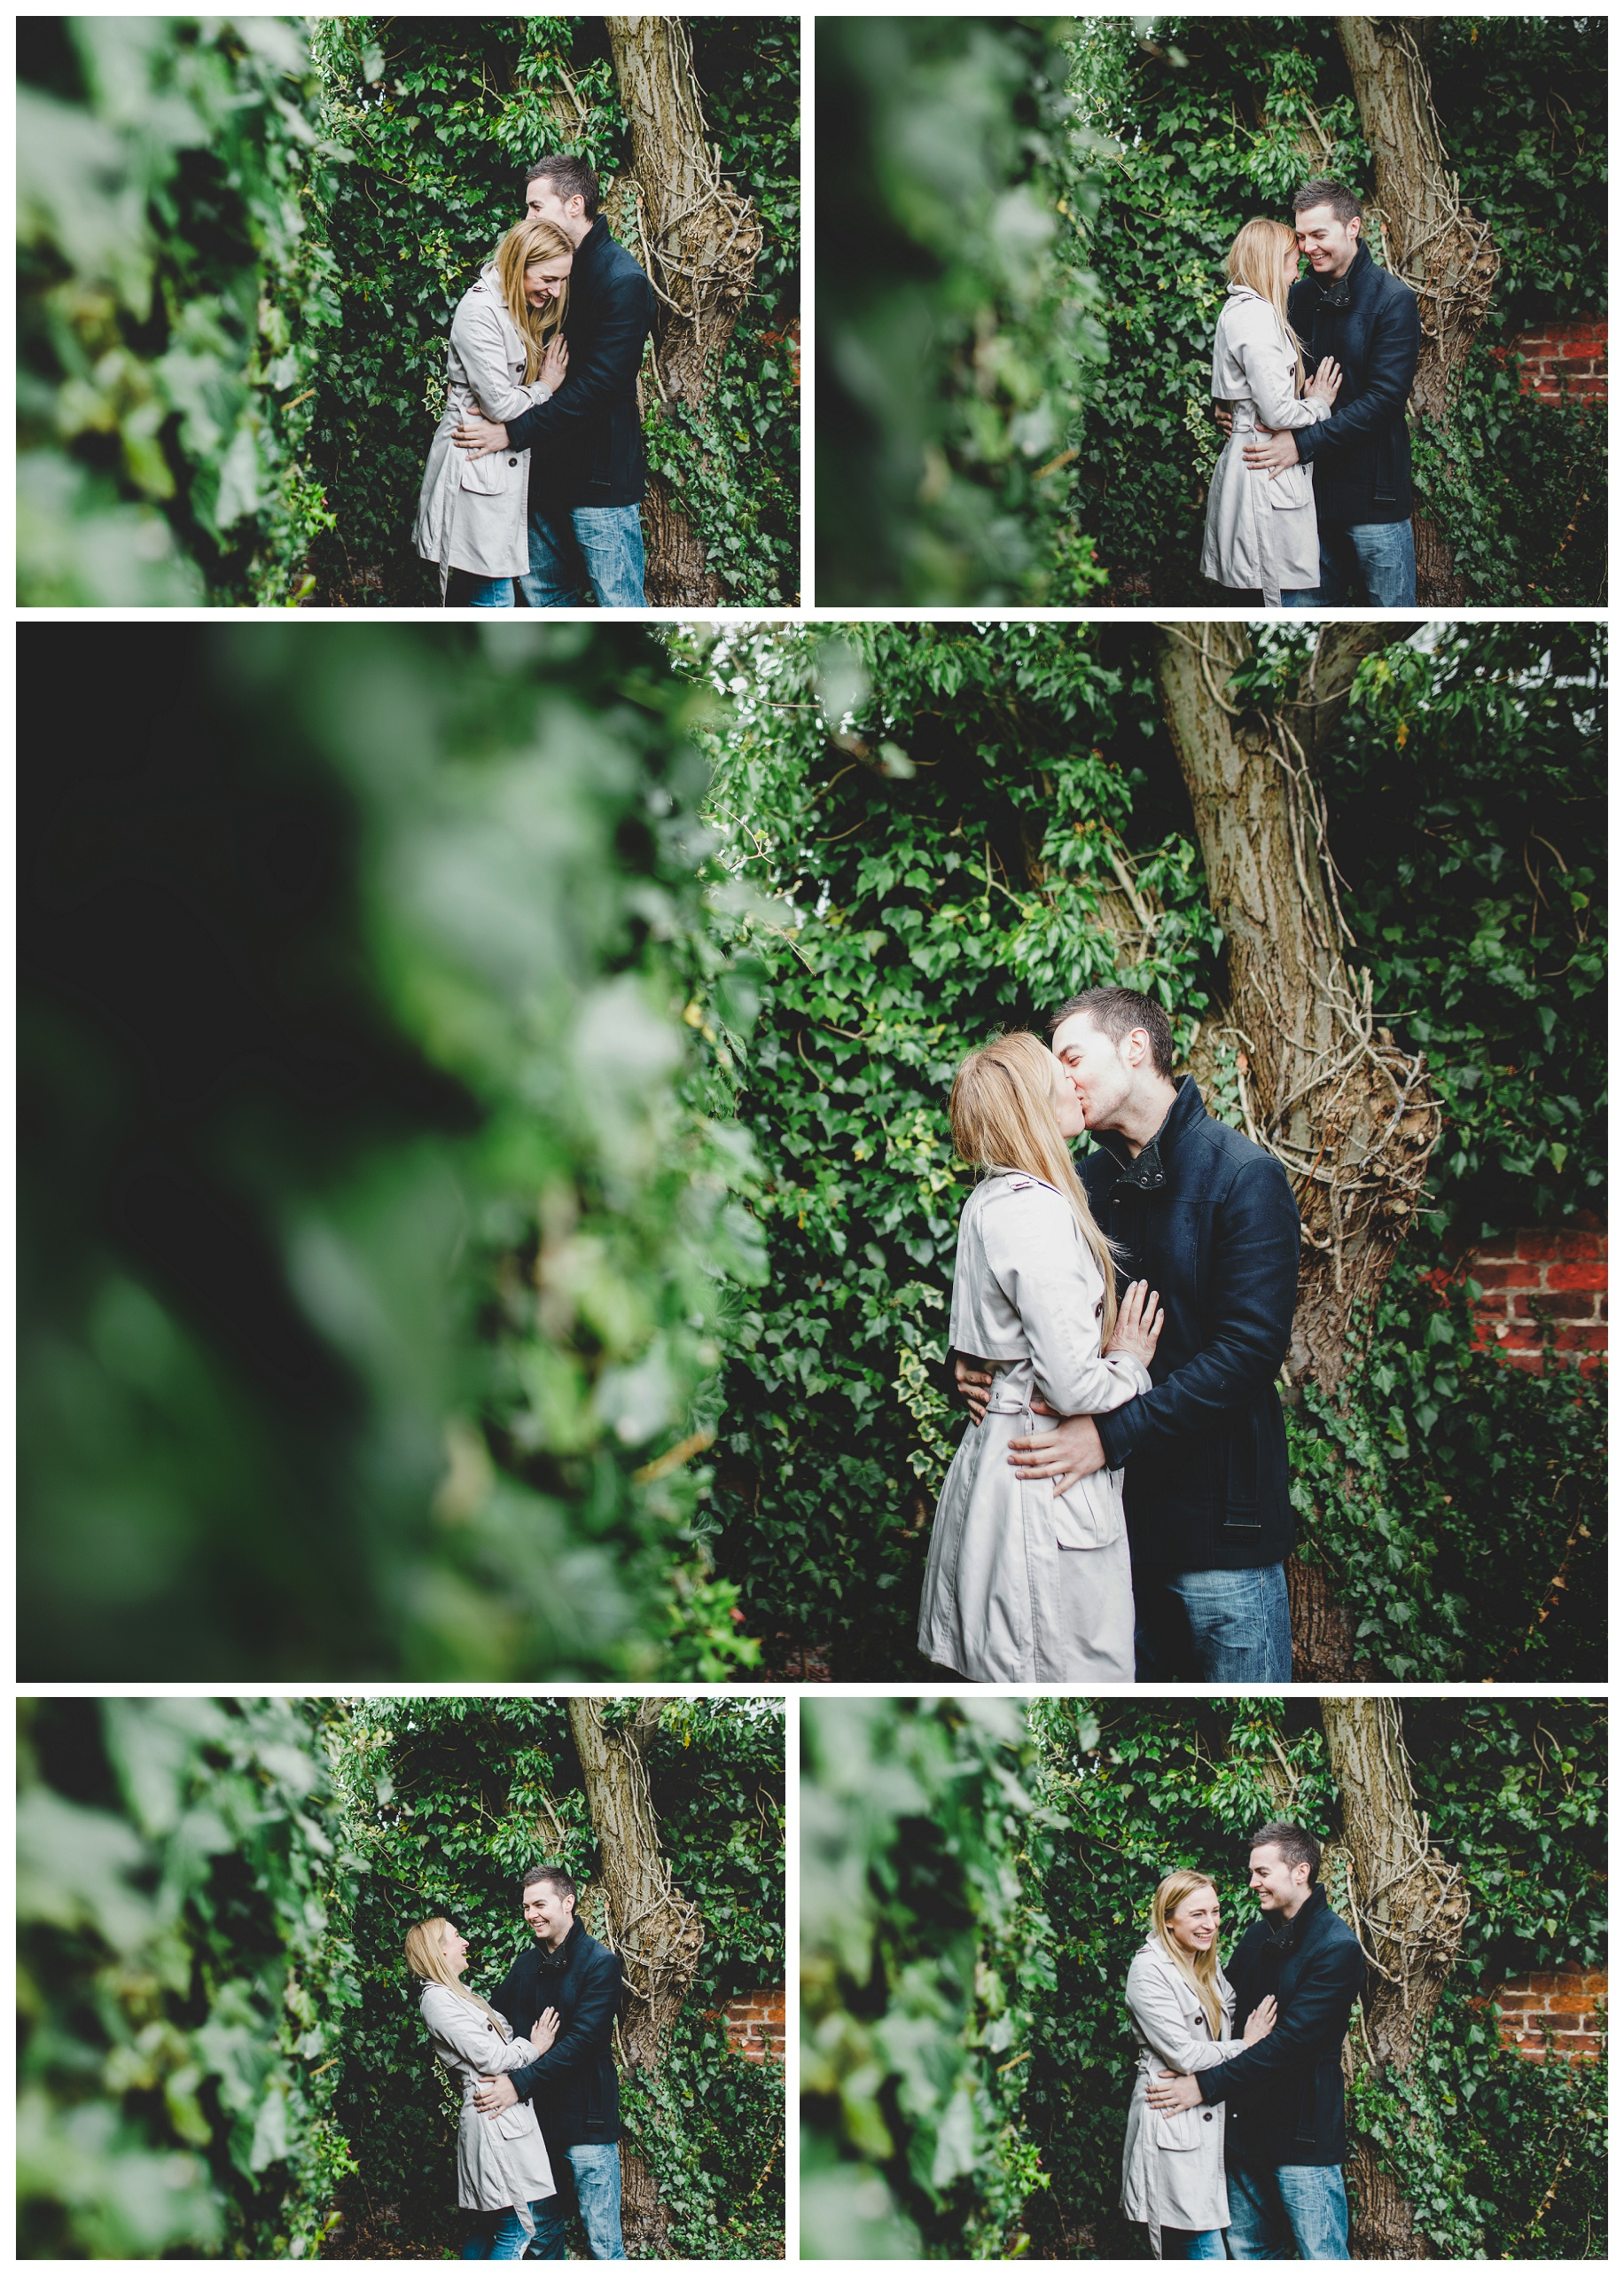 Cheshire wedding photographer - pre wedding photoshoot - The Oaktree of Peover (5)